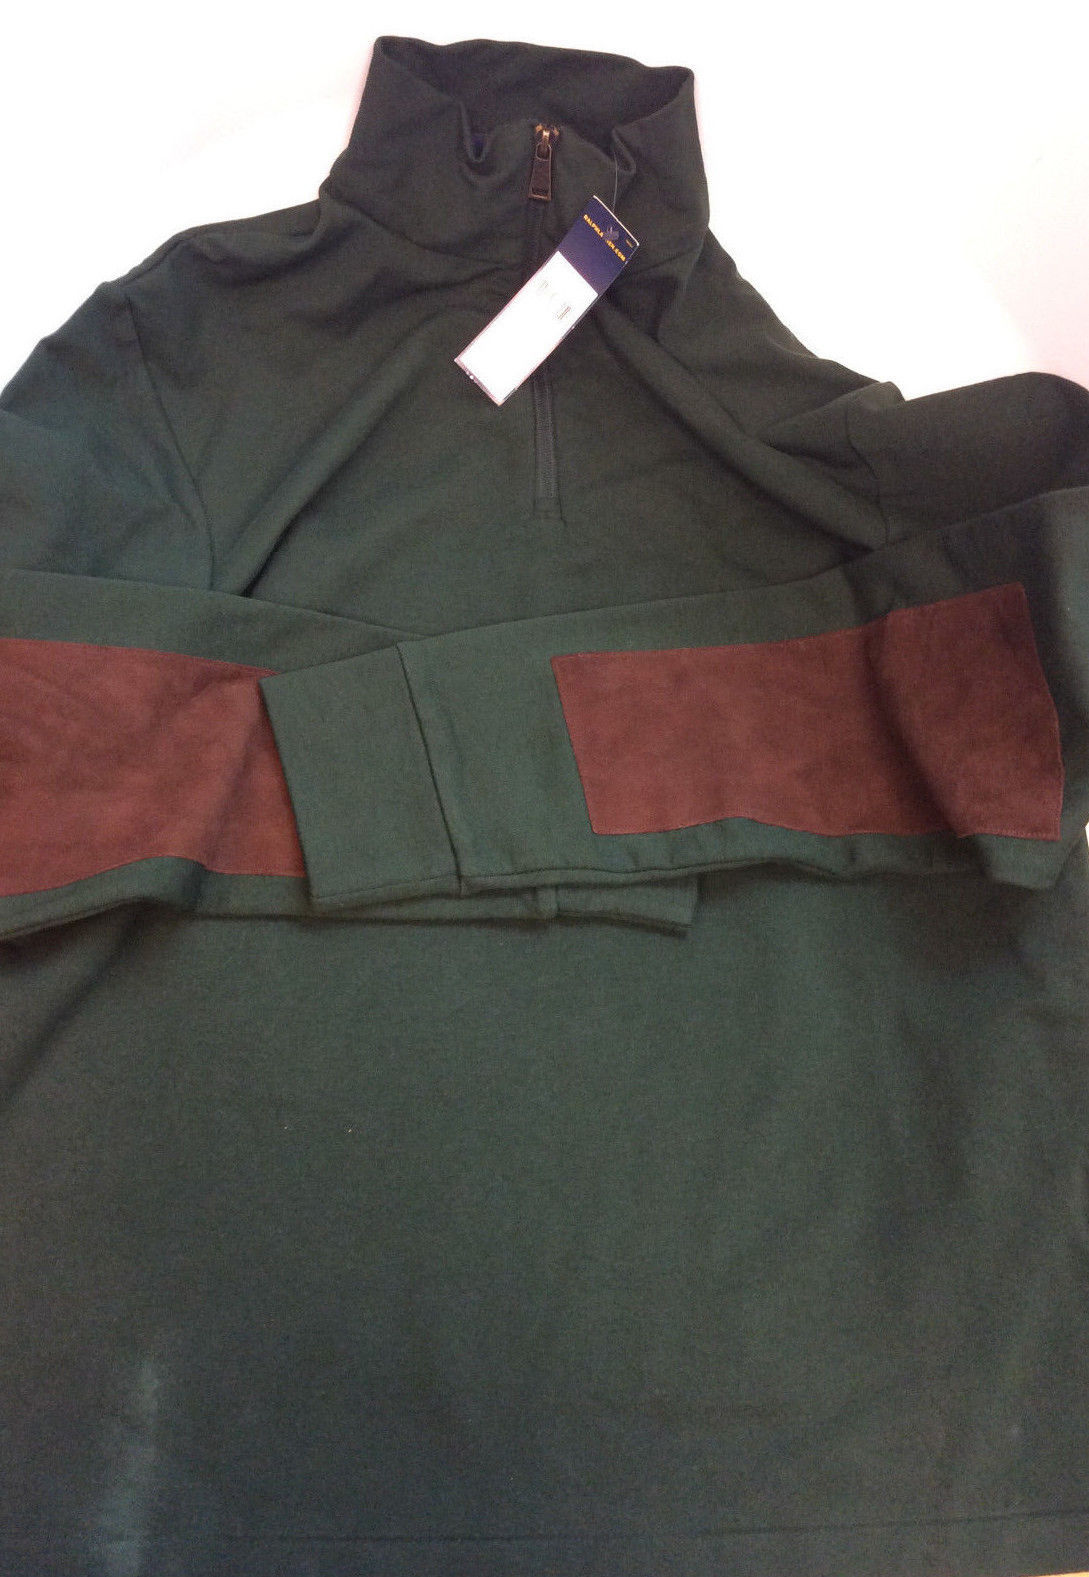 $185 Polo Ralph Lauren Men's French Terry Mockneck Pullover, Green, Size XL